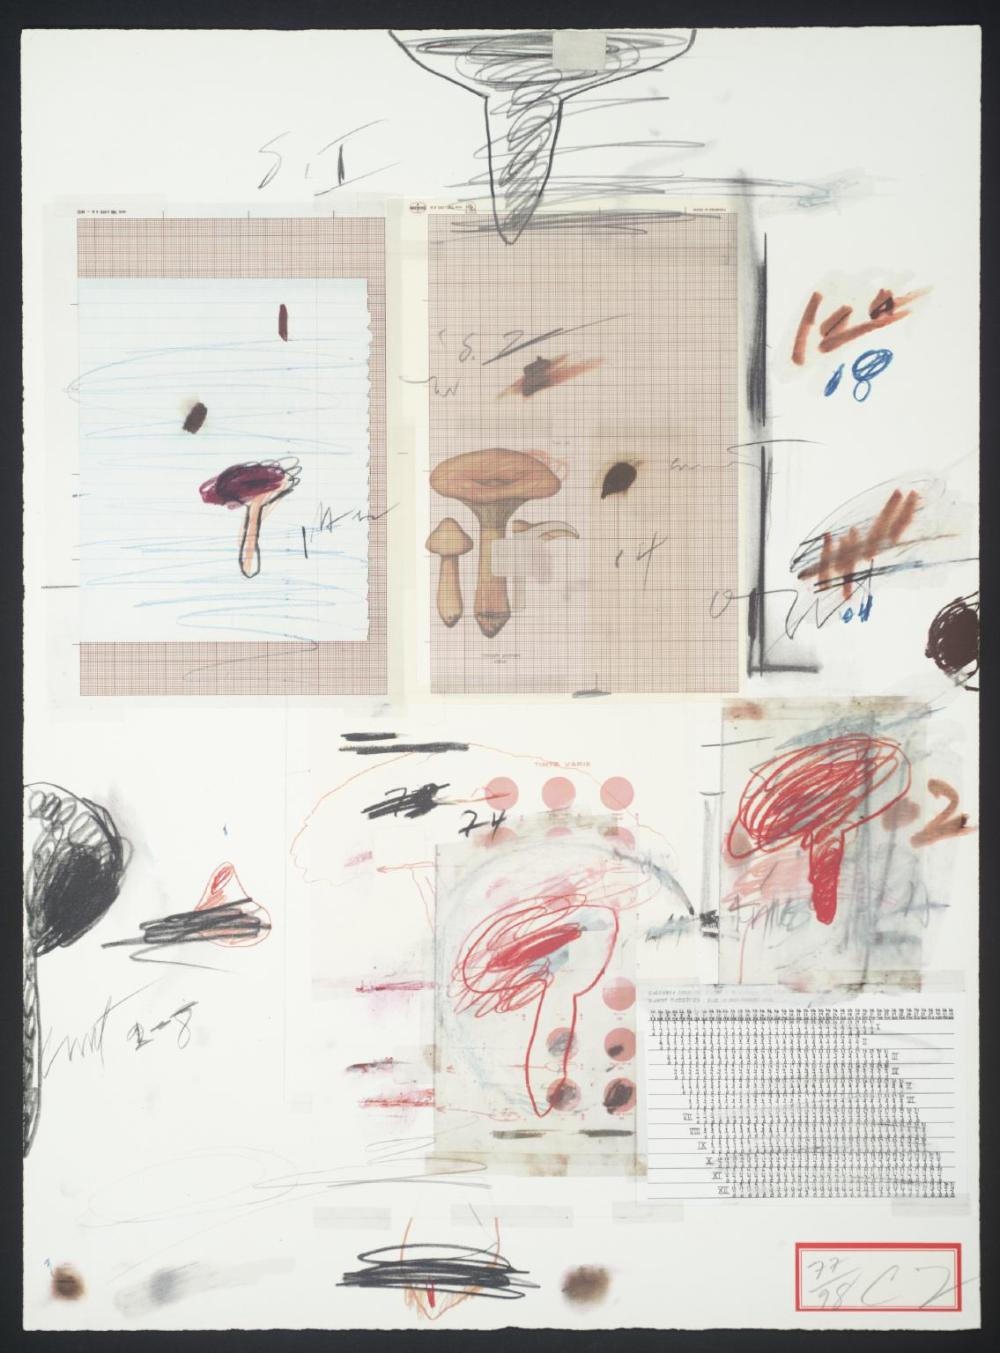 No. IV 1974 by Cy Twombly 1928-2011